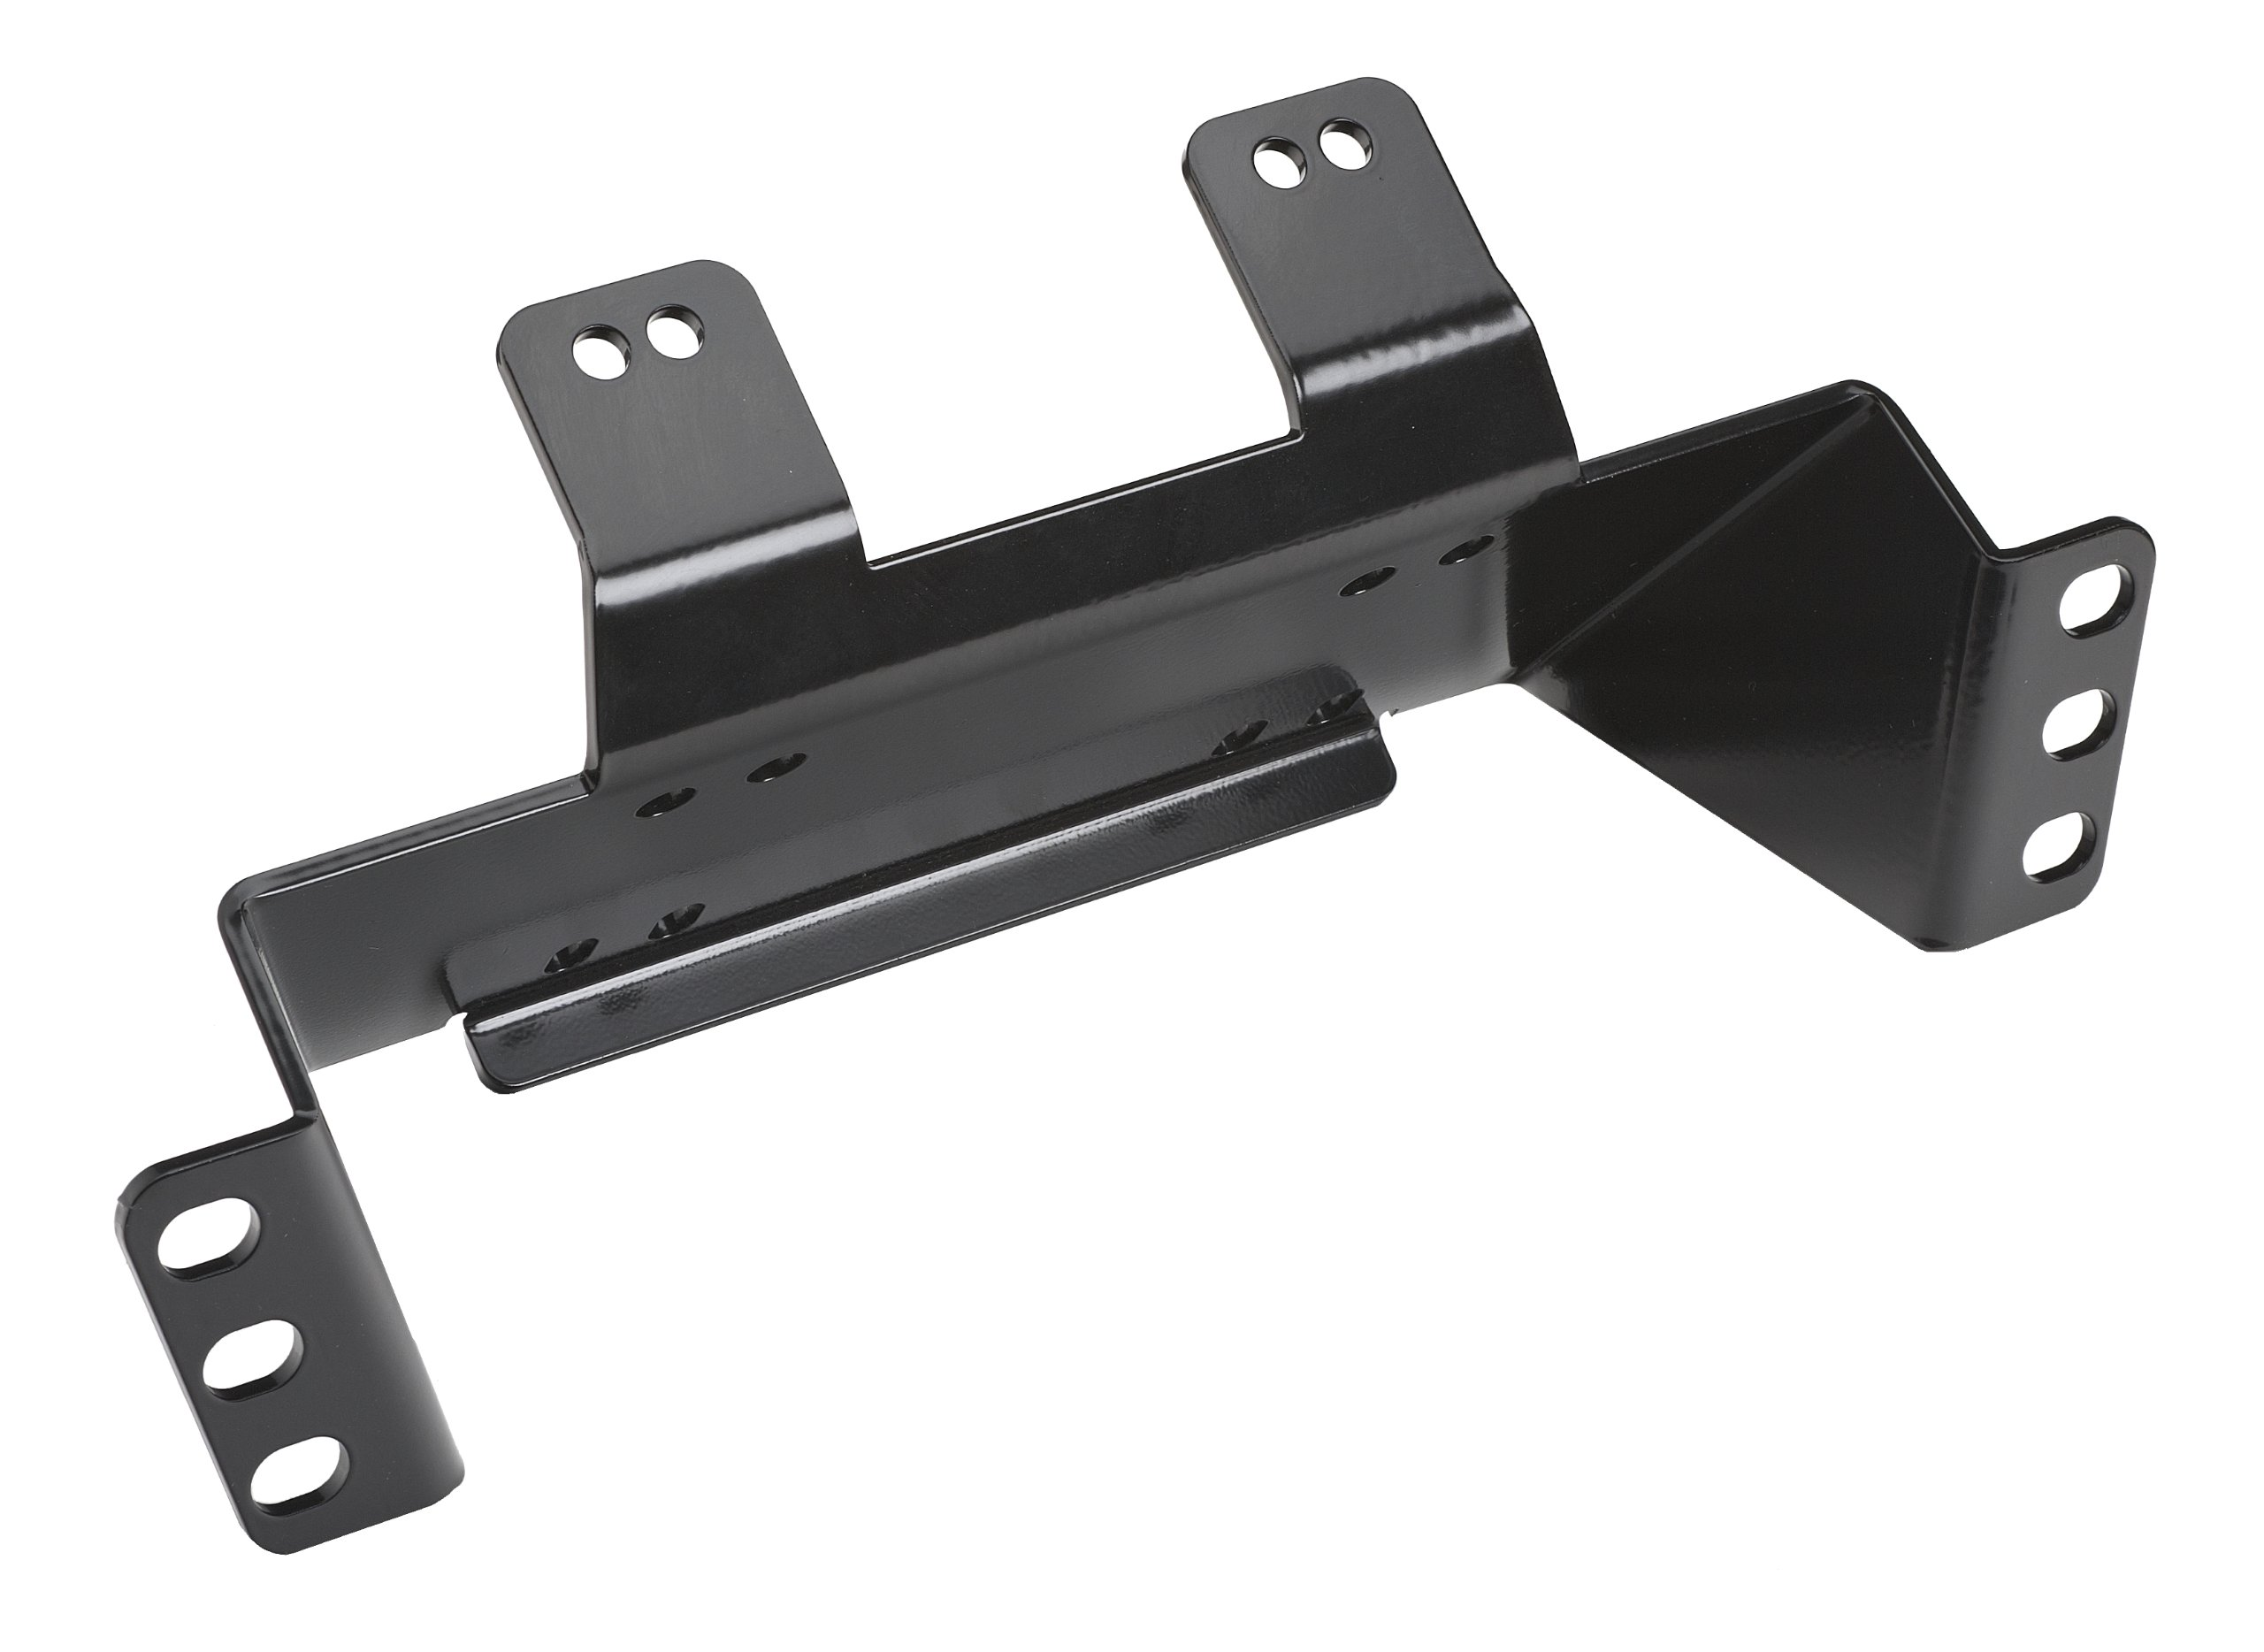 VIPER UTV Winch Mount Plate for Midsize Ranger (see fitment) by MotoAlliance